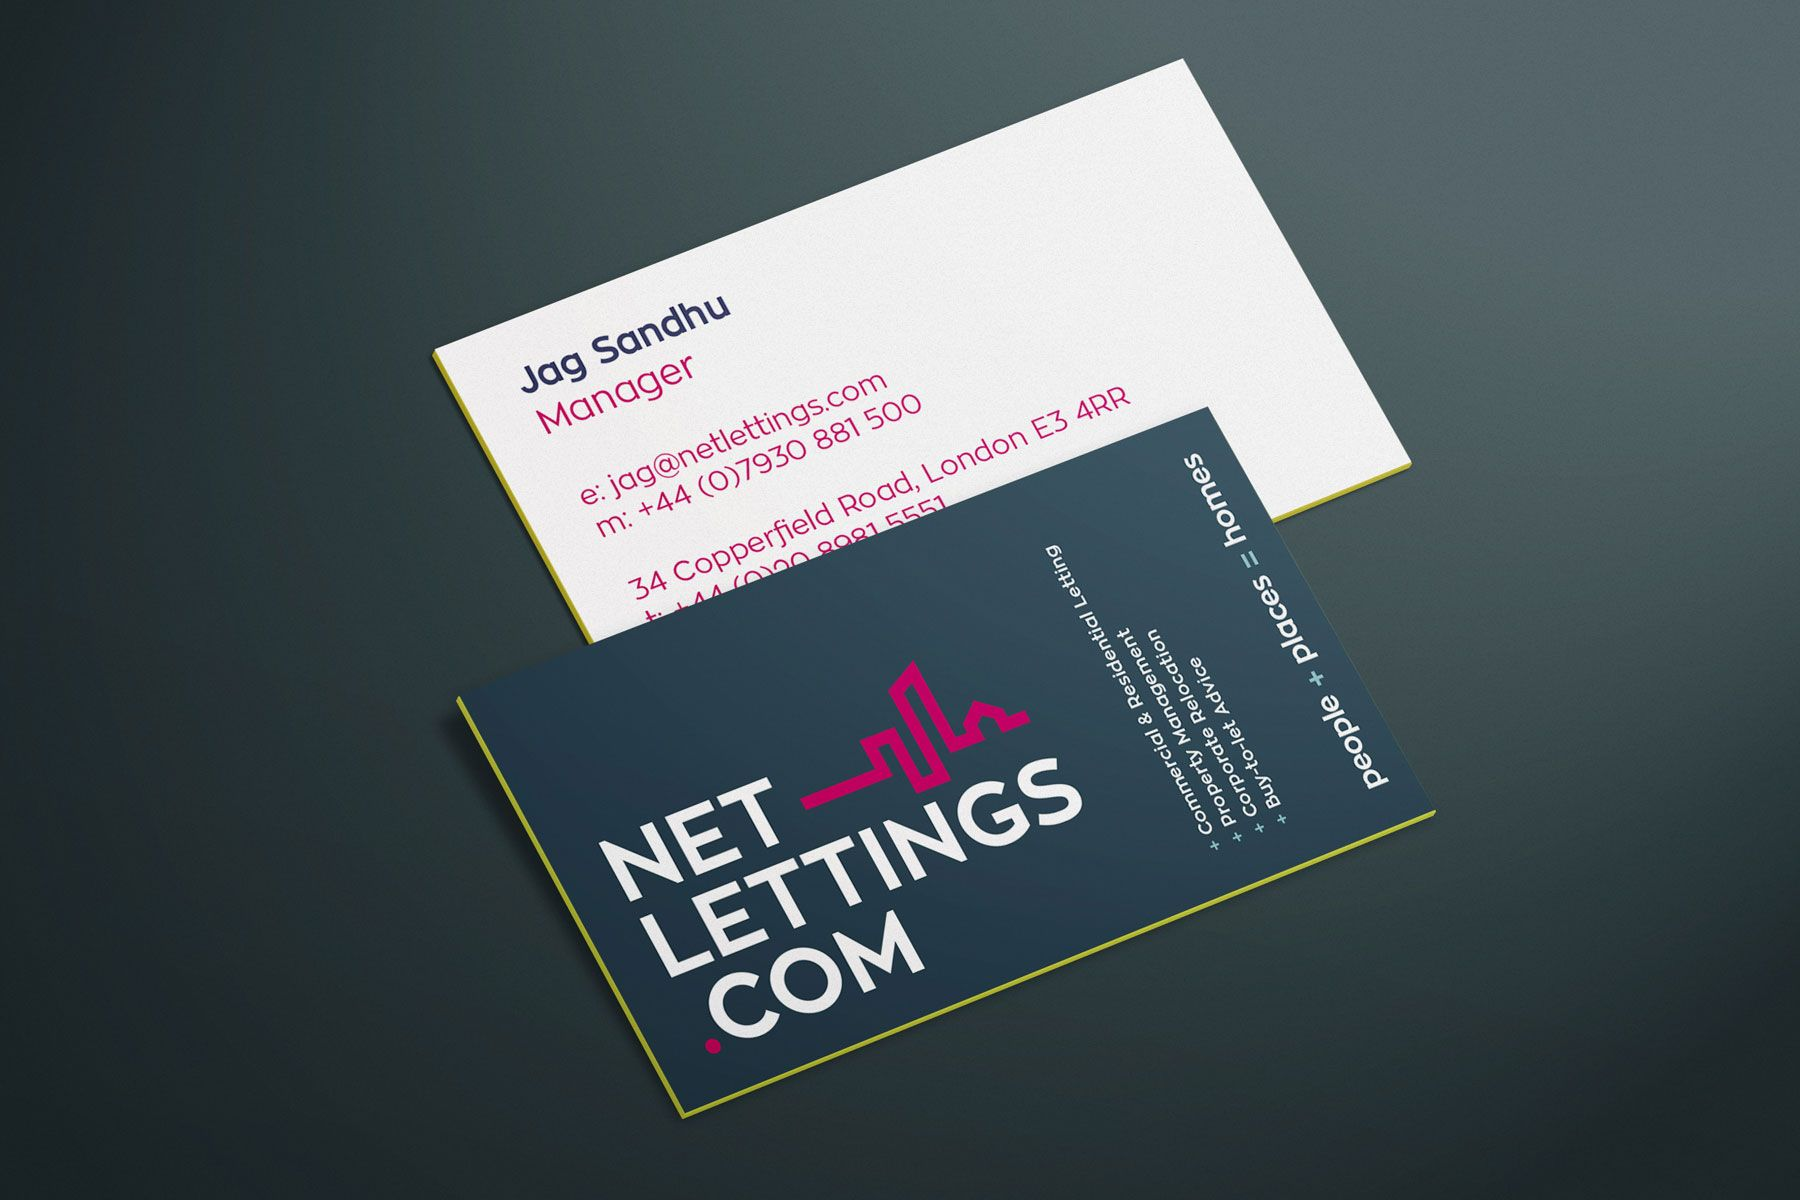 Net_Lettings_7